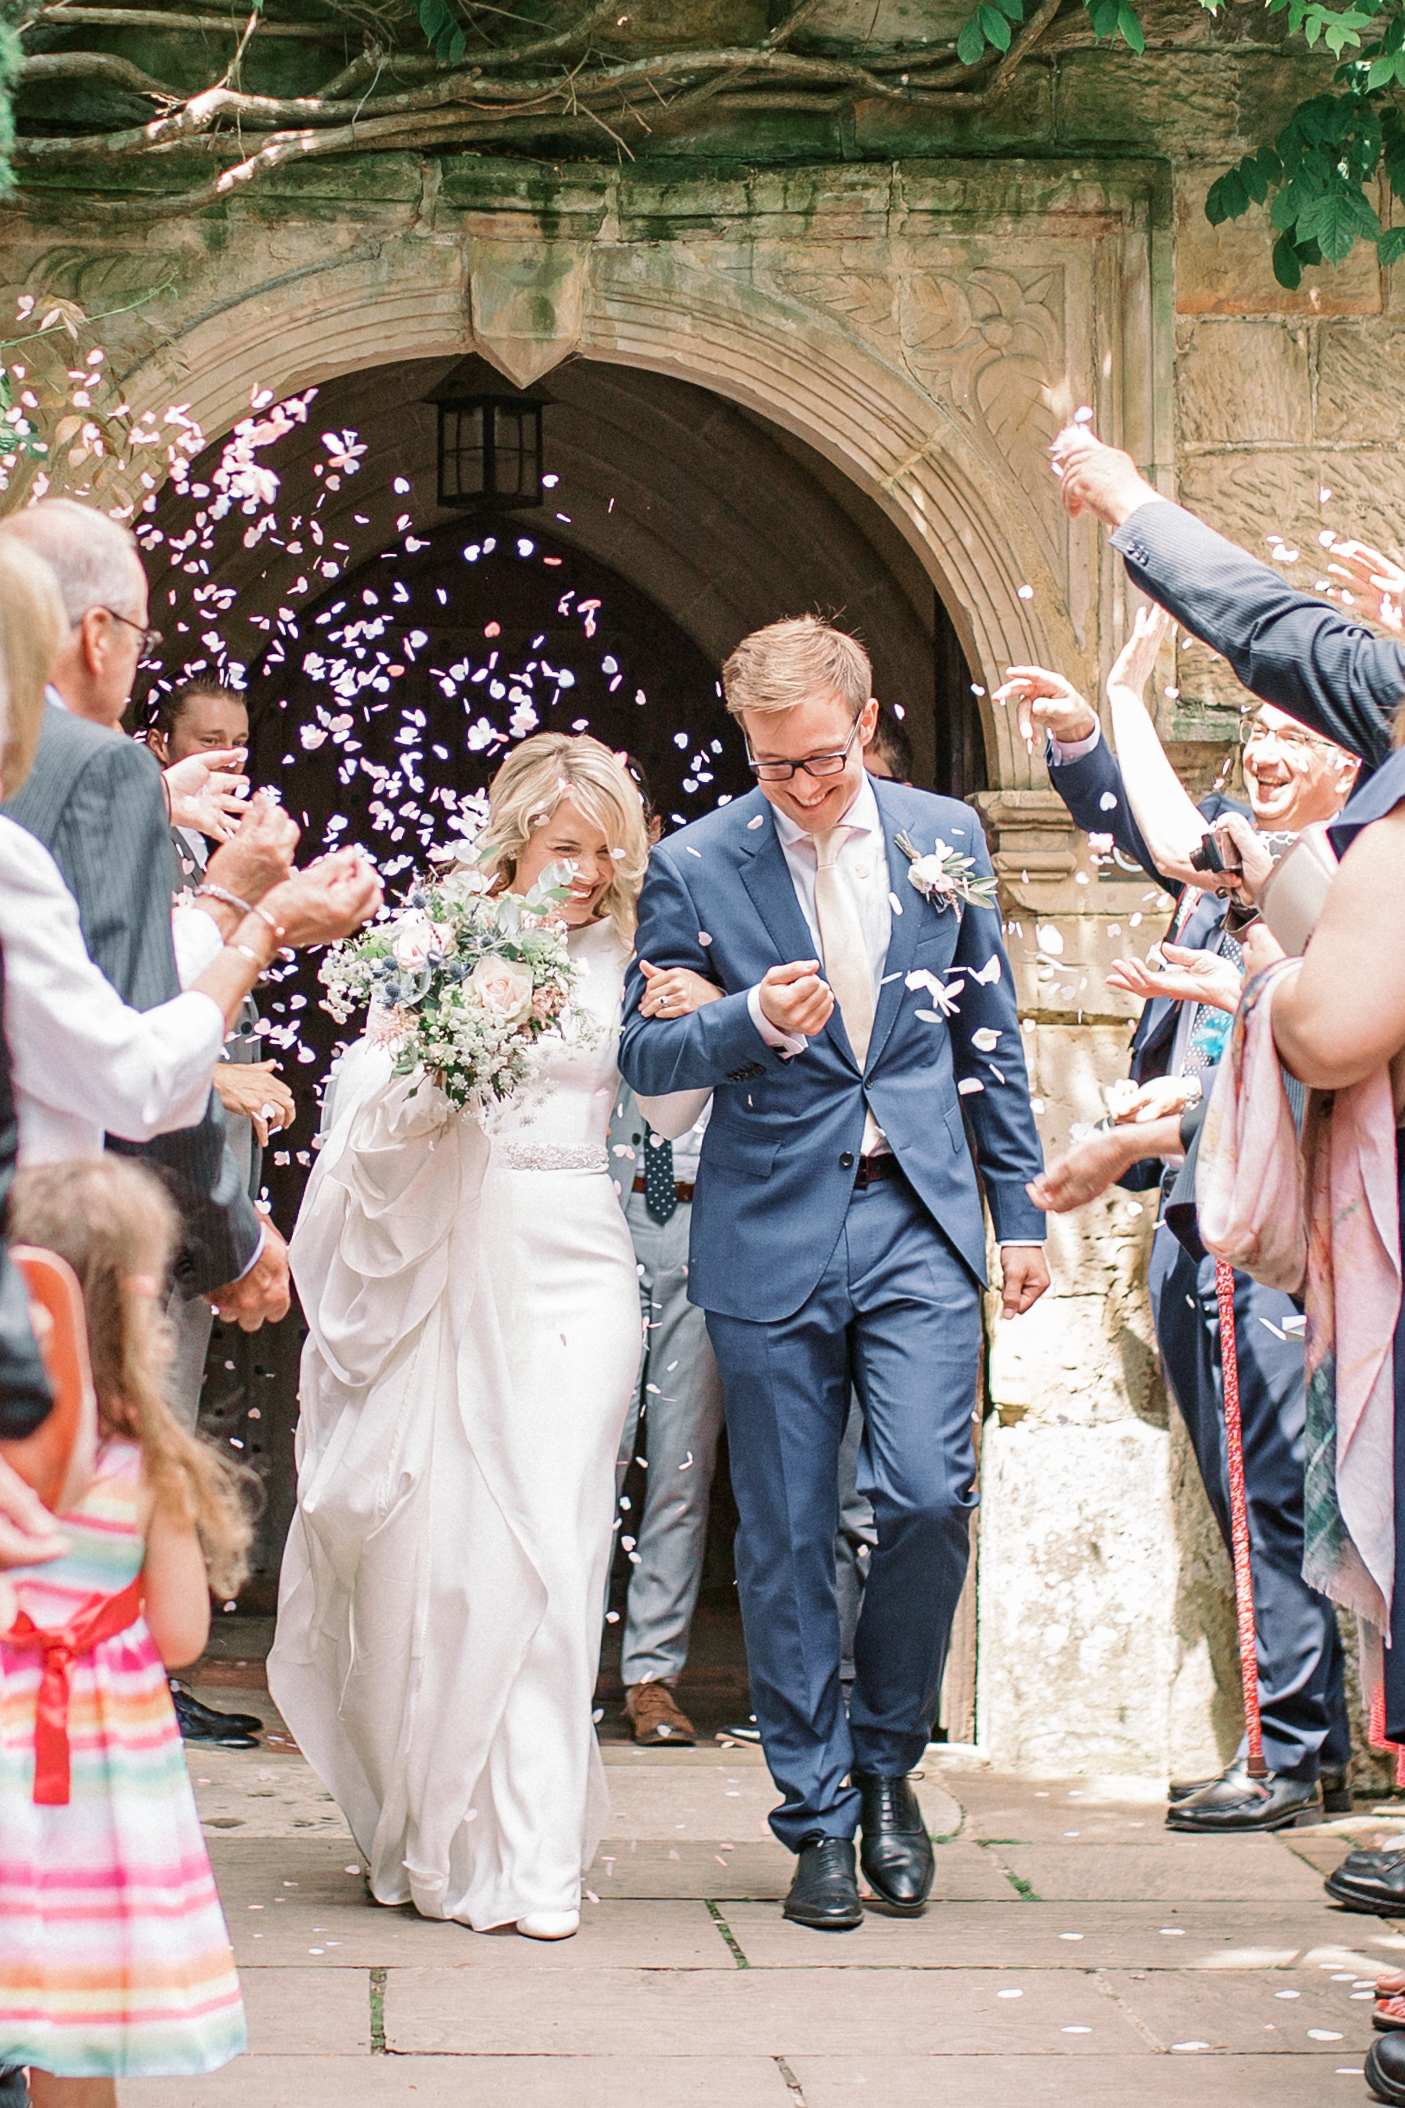 Couple exiting church after their wedding at Chiddingstone Castle